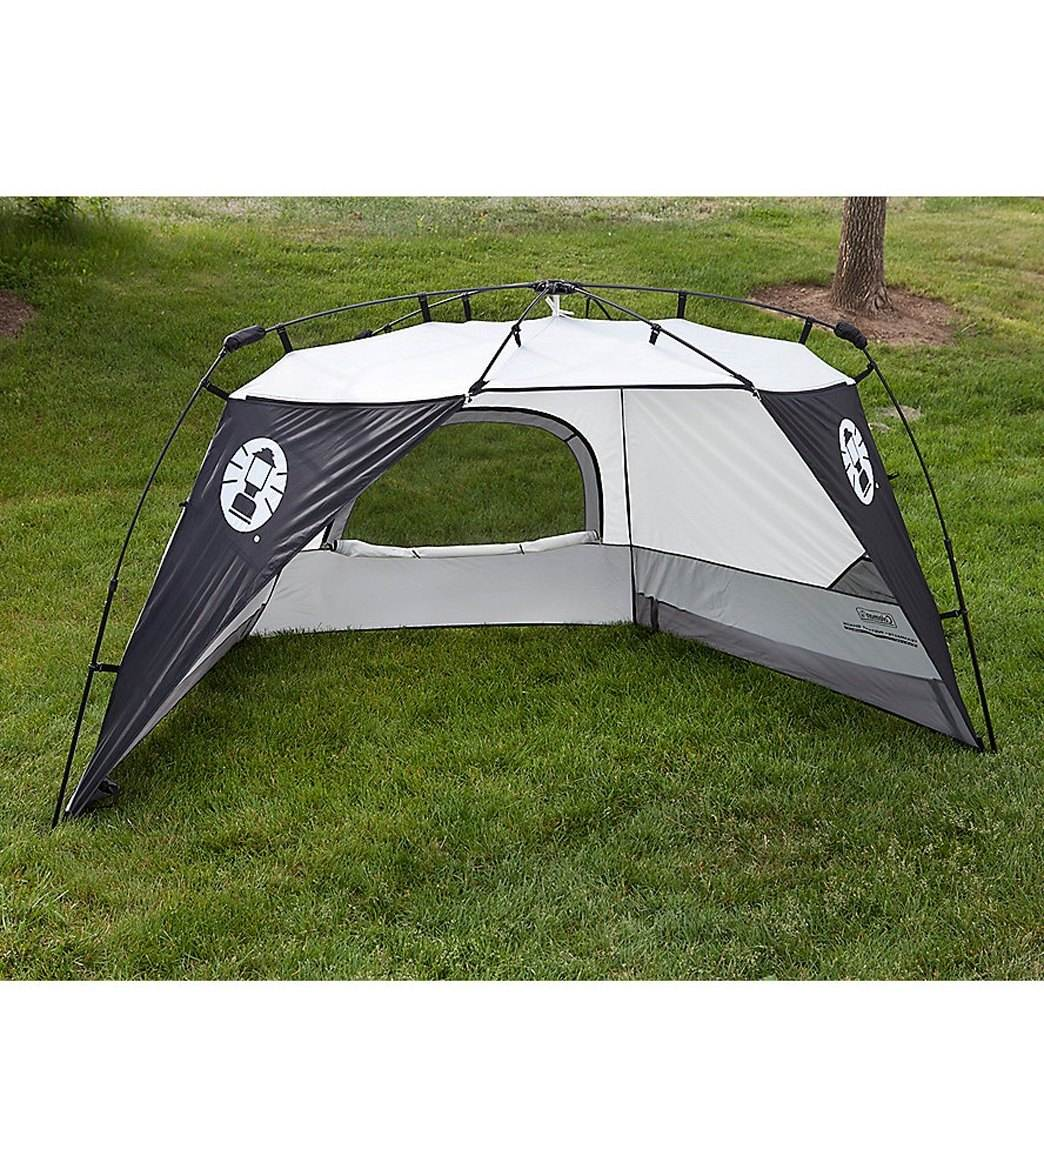 Coleman Instant Shade Teammate Shelter Beach Tent at SwimOutlet.com - Free Shipping  sc 1 st  SwimOutlet.com & Coleman Instant Shade Teammate Shelter Beach Tent at SwimOutlet ...